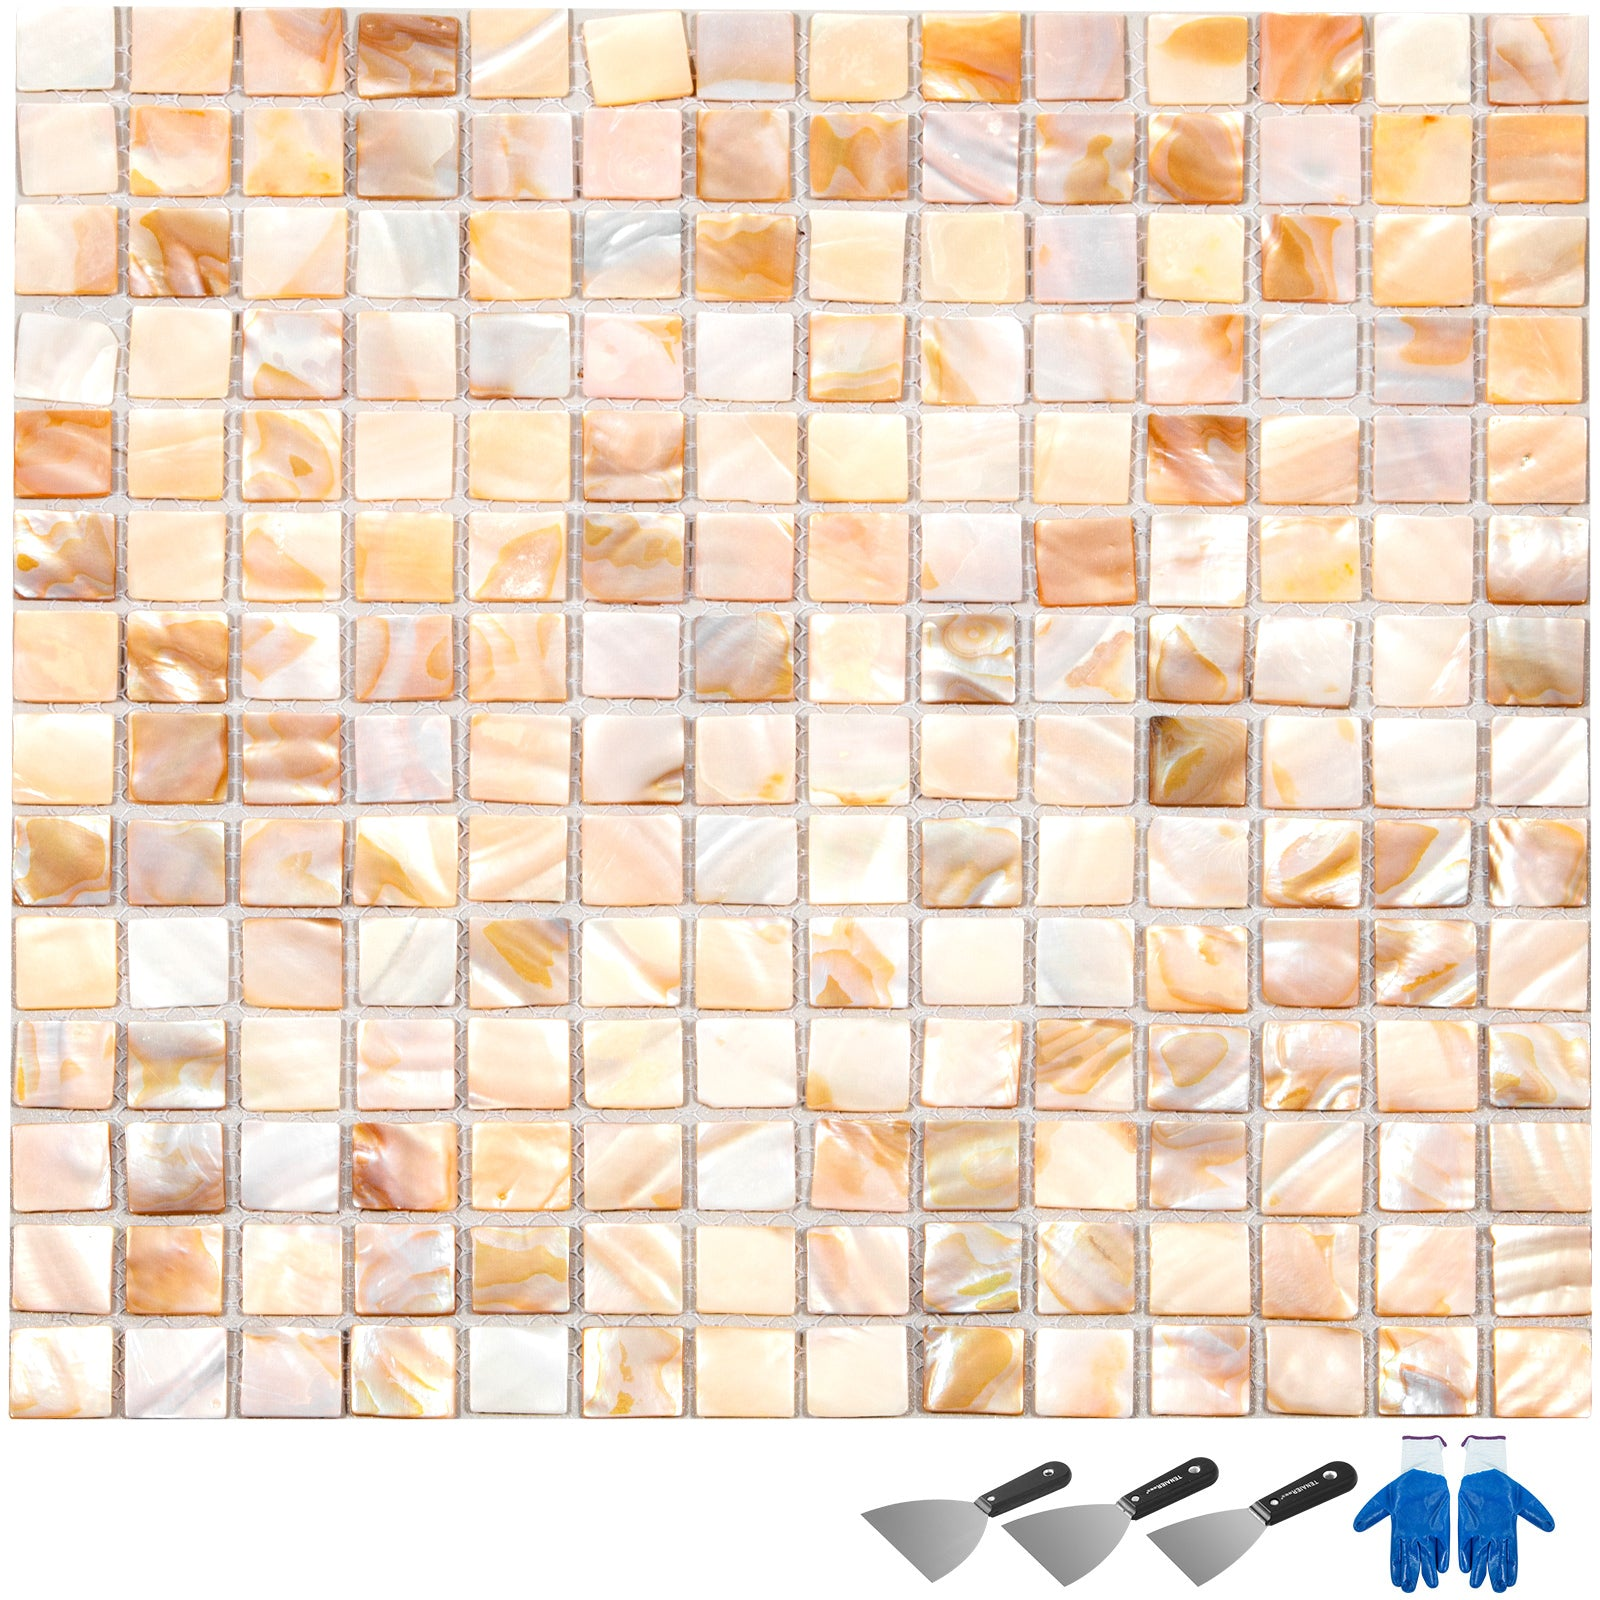 300 * 300 * 2mm Square Shell Mosaic Shower Tiles Kitchen Backsplash 12pcs